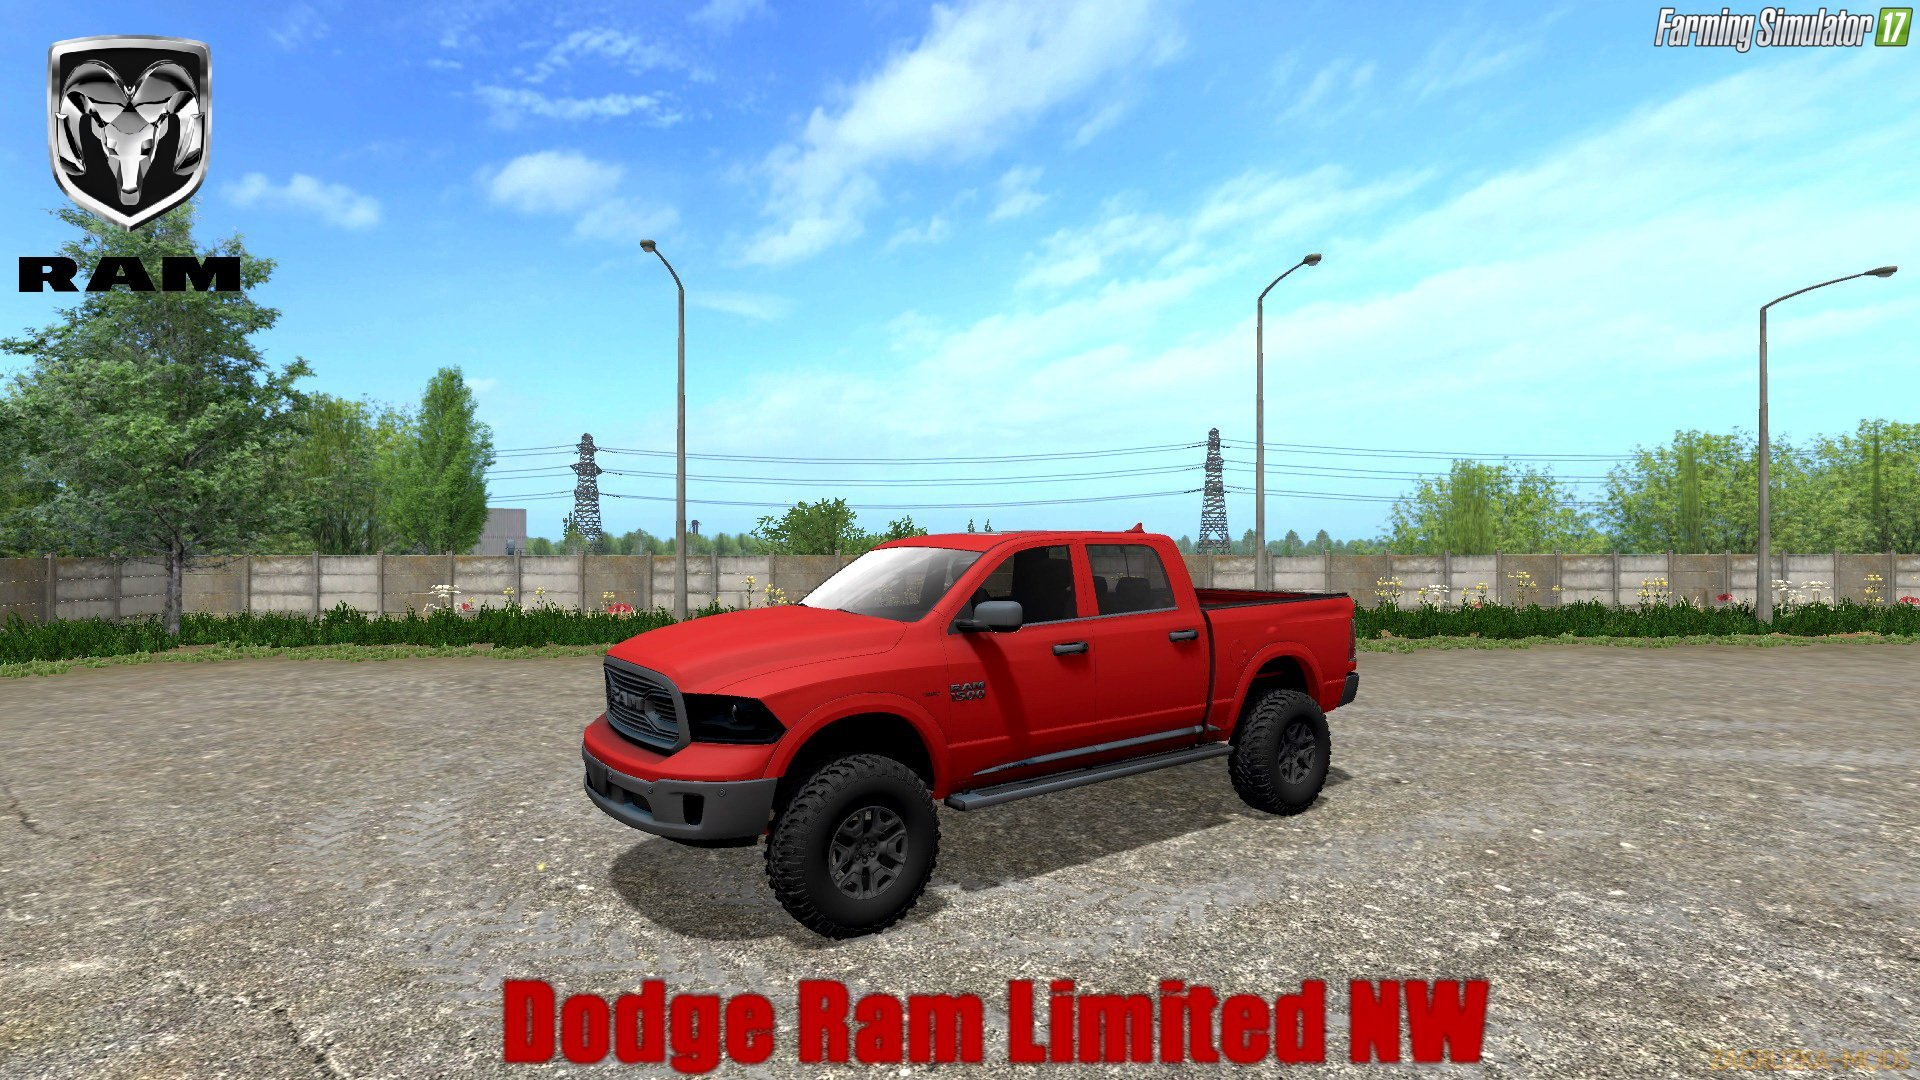 Dodge Ram Limited v1.0 for FS 17